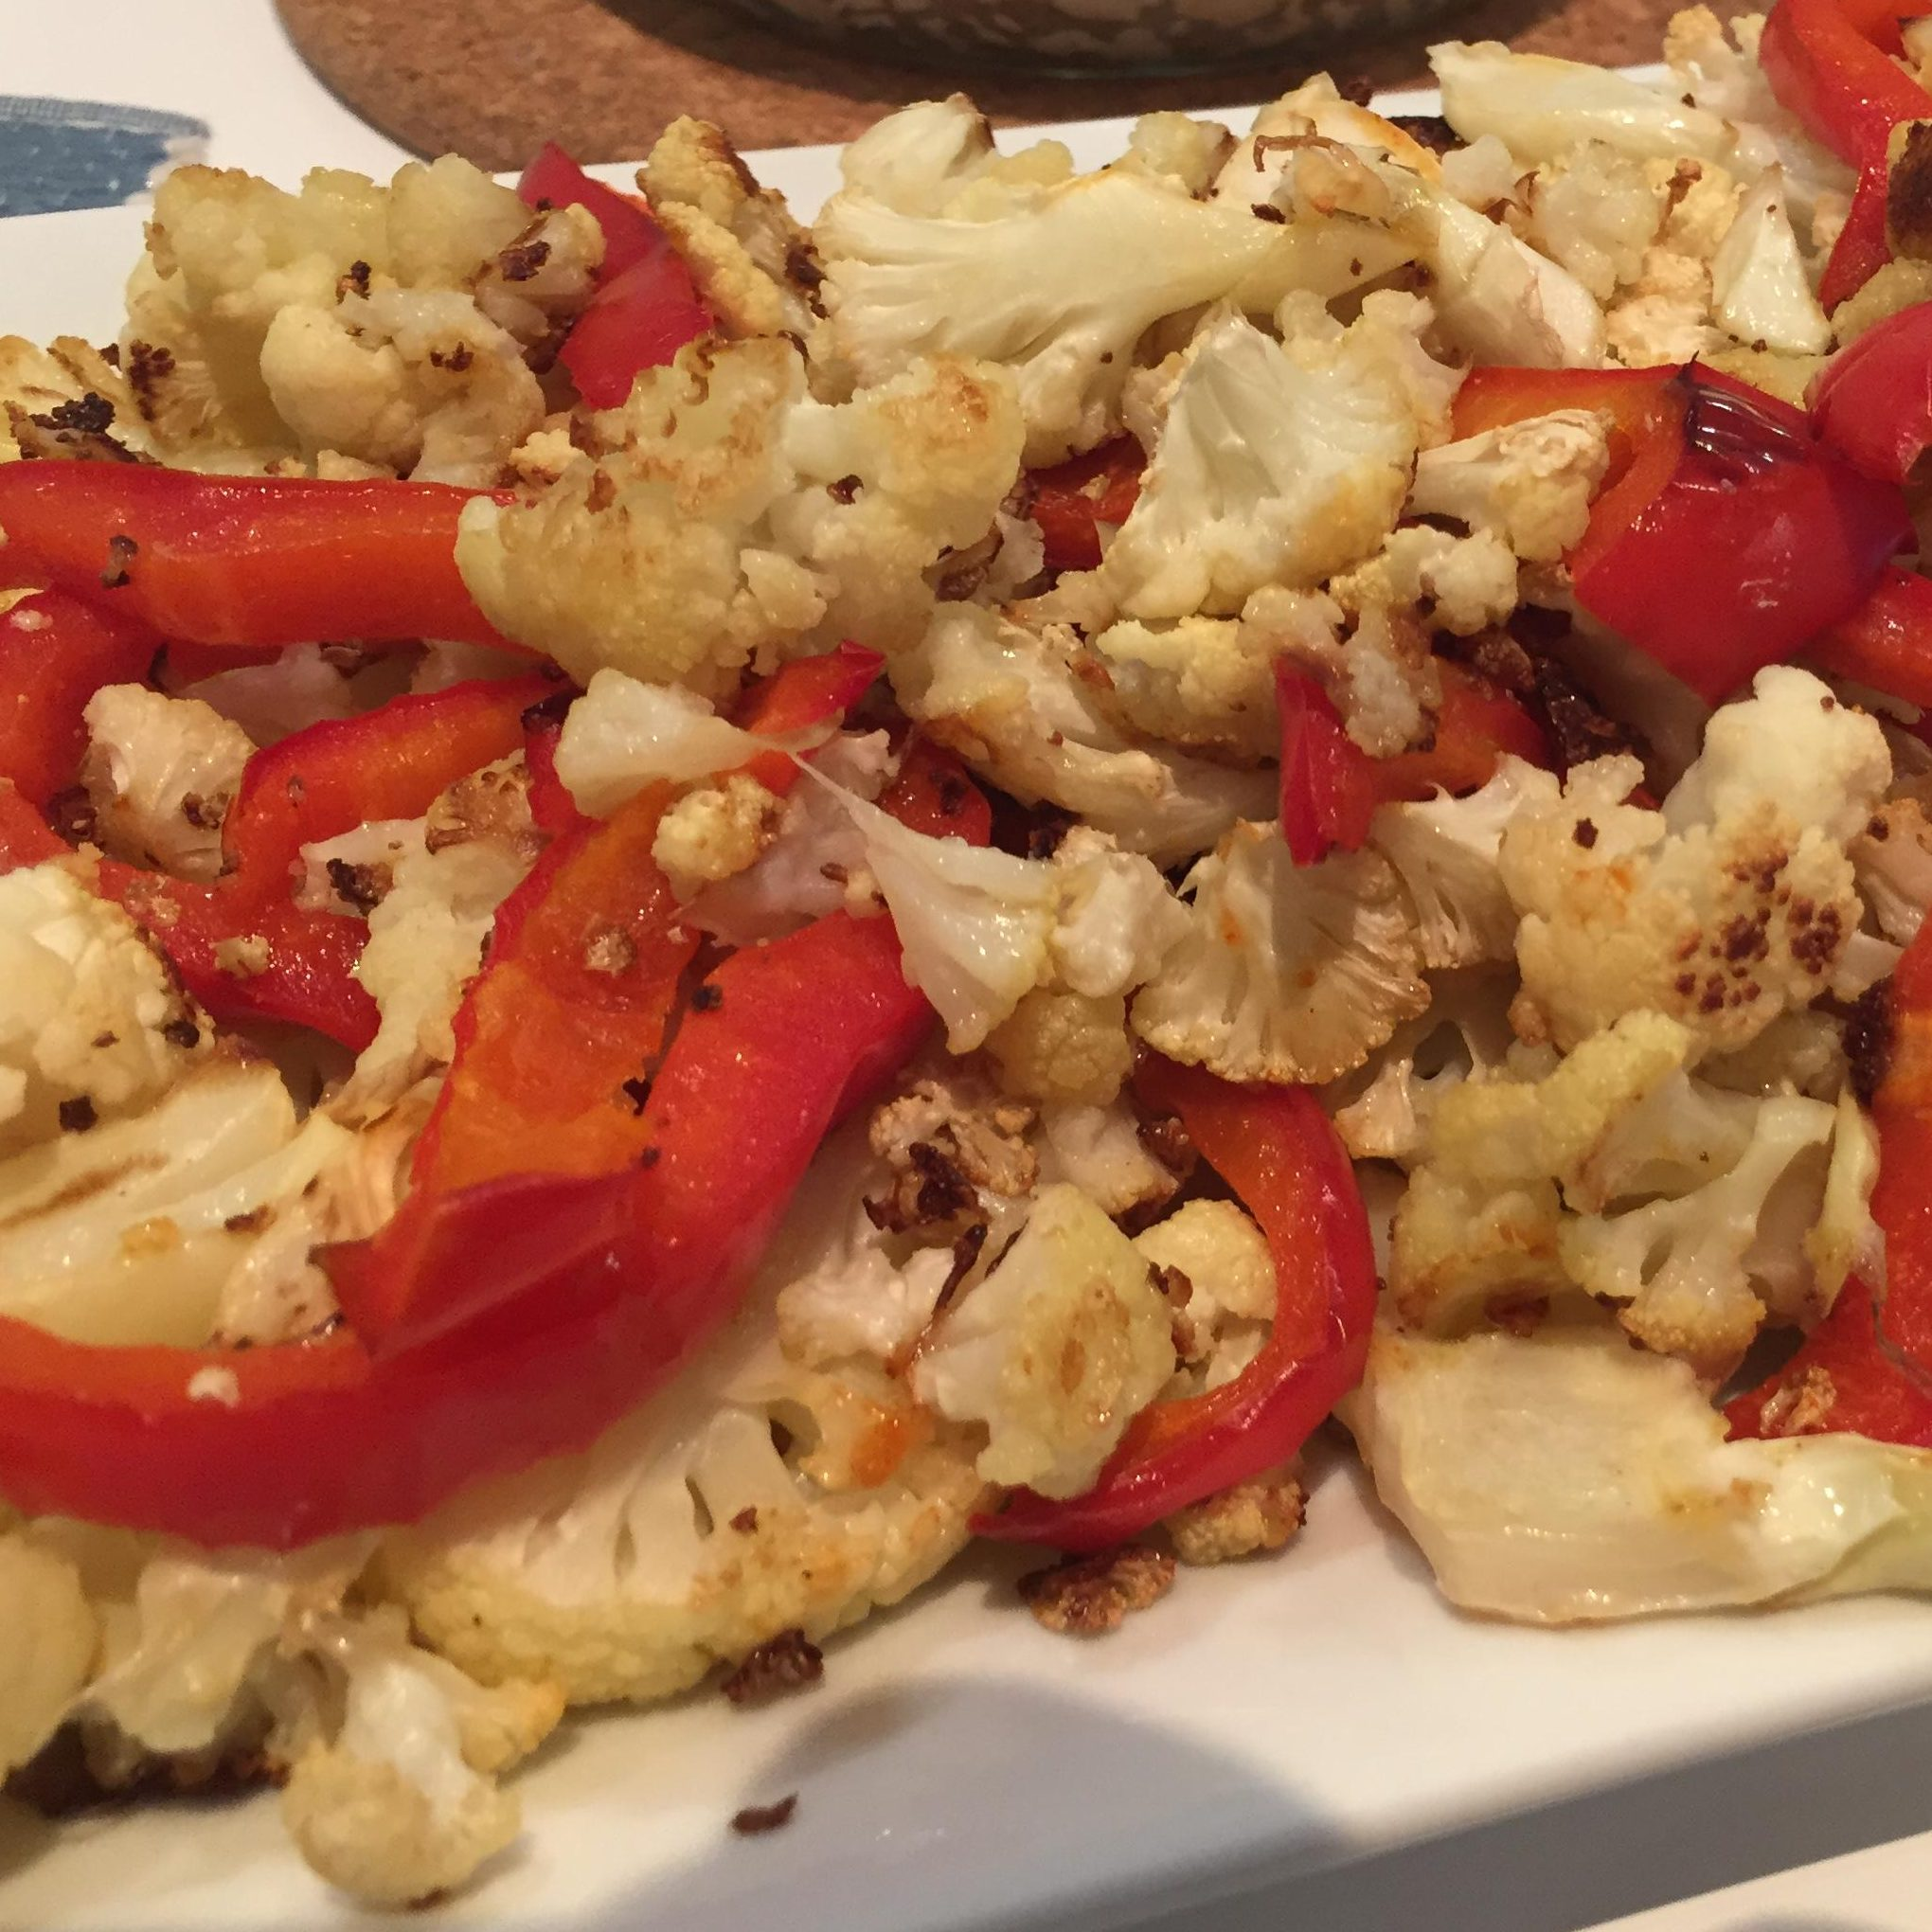 Roasted Cauliflower with Red Bell Peppers